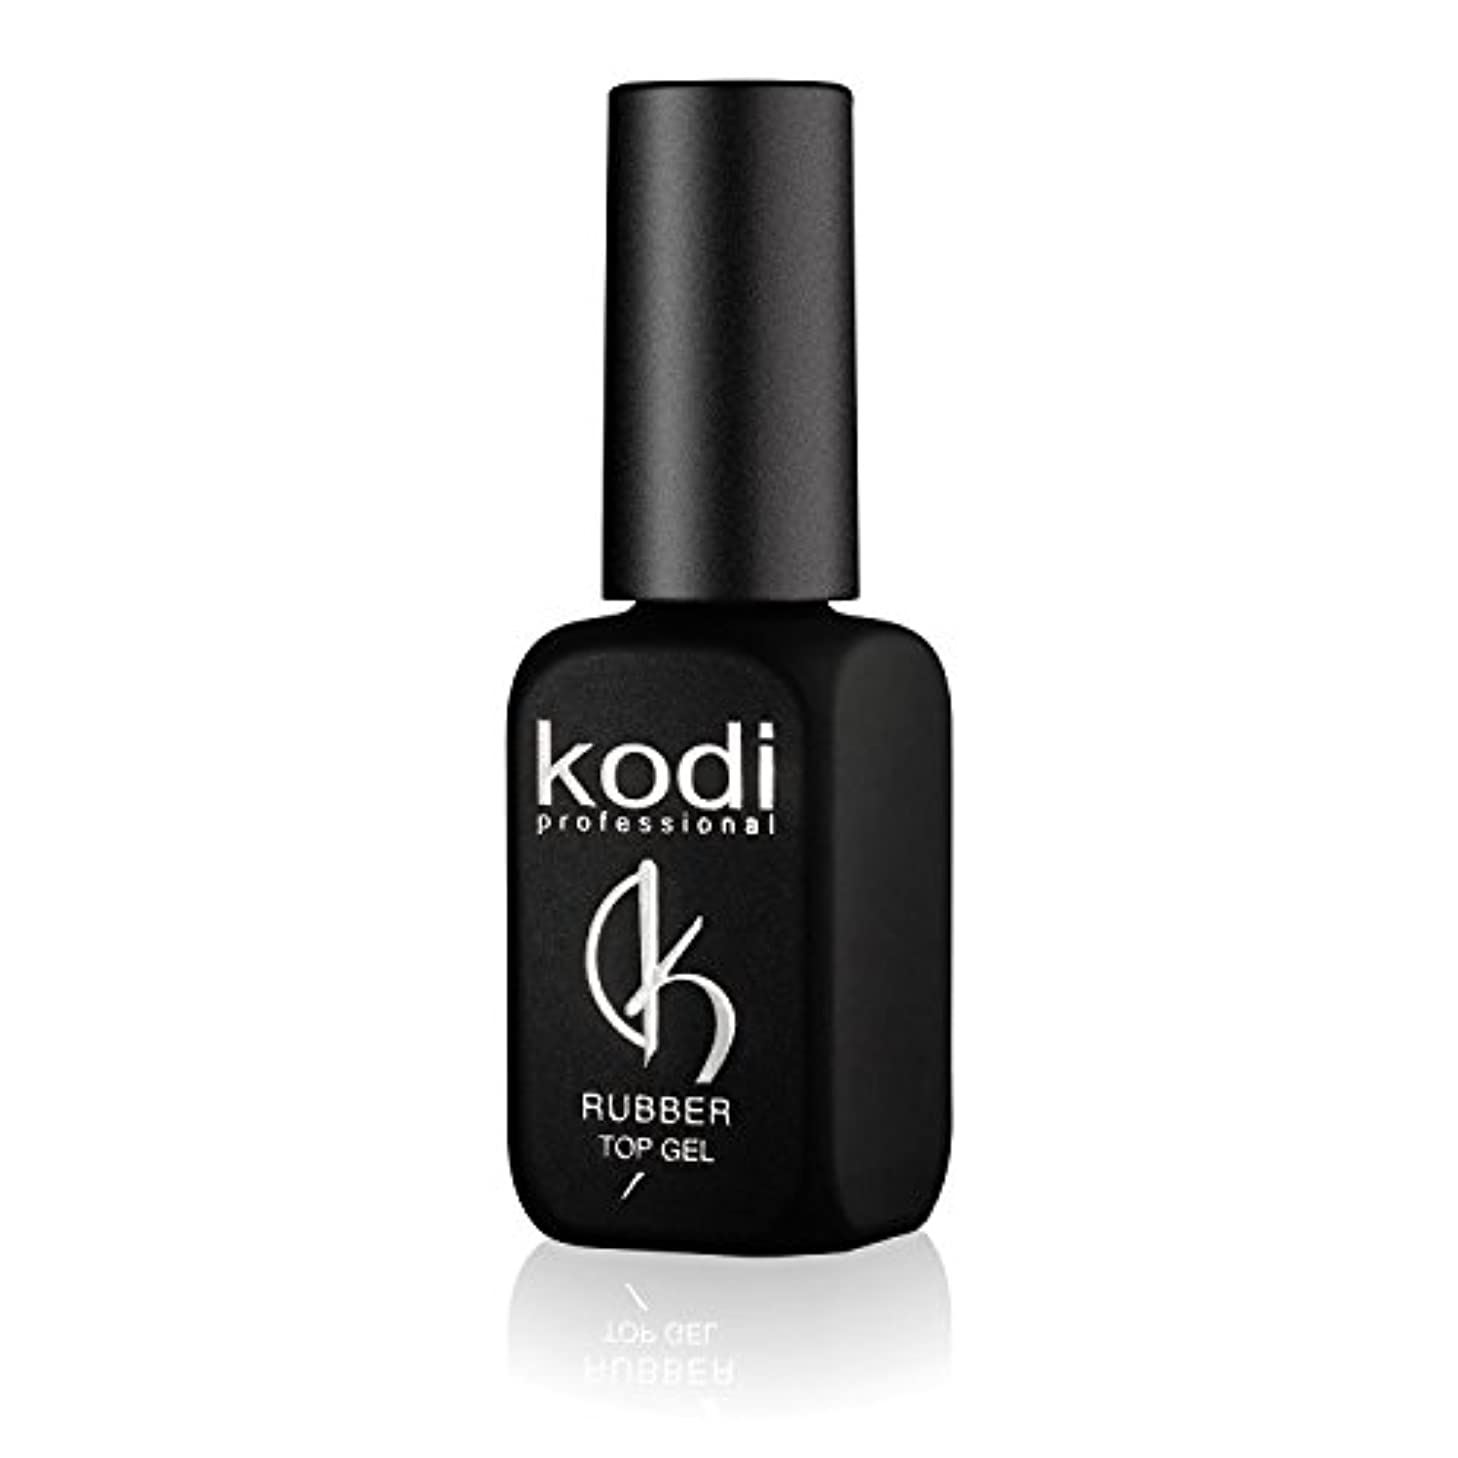 アプローチあざ皮肉Professional Rubber Top Gel By Kodi | 12ml 0.42 oz | Soak Off, Polish Fingernails Coat Gel | For Long Lasting Nails Layer | Easy To Use, Non-Toxic & Scentless | Cure Under LED Or UV Lamp